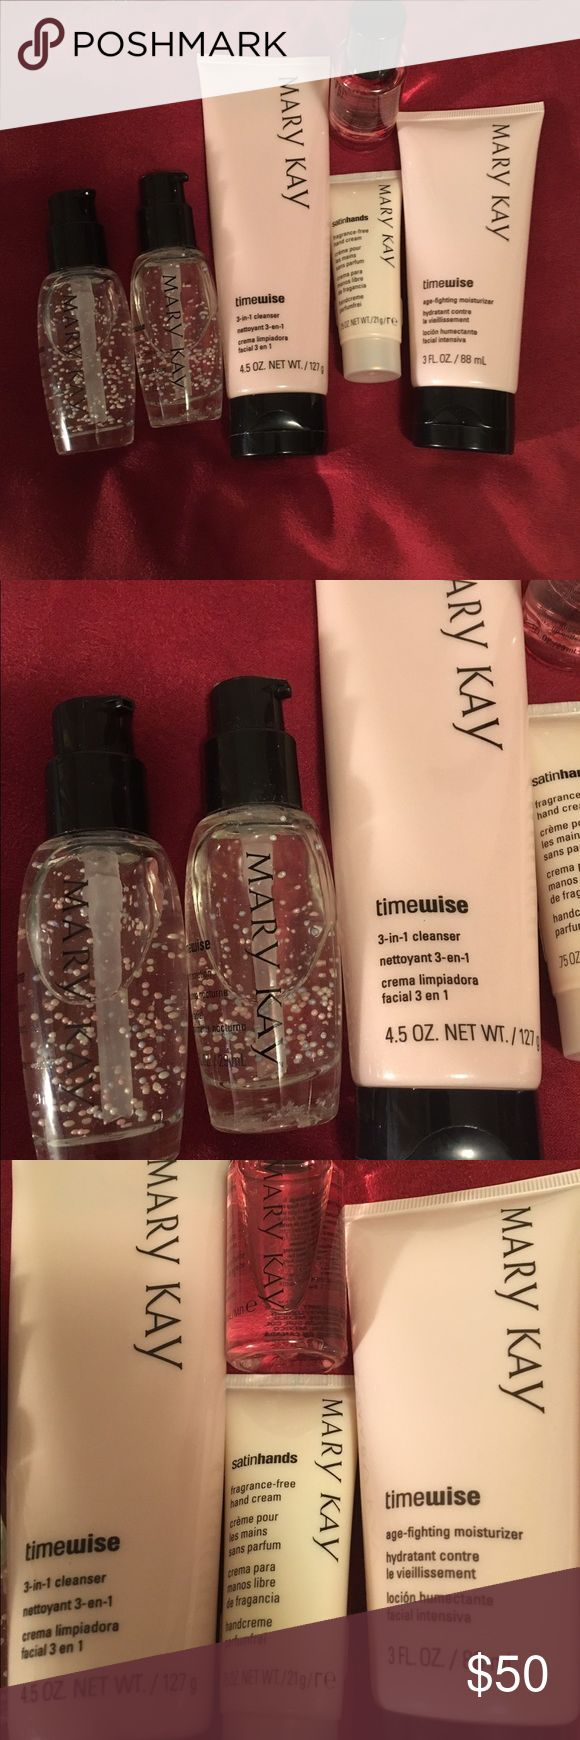 Mary Kay Timewise Bought it used it once, didn't like it, had a bit of allergy to it.                                                            1 timewise: age fighting moisturizer 3 FL. Oz.               1 -Mary Kay timewise 3- in-1 cleanser 4.5 oz.             1 - .75 oz satinhands fragrance free                         2 - Mary Kay timewise night solution 1oz                  Missing the lid covers.                                           1 Mary Kay makeup remover Mary Kay Other